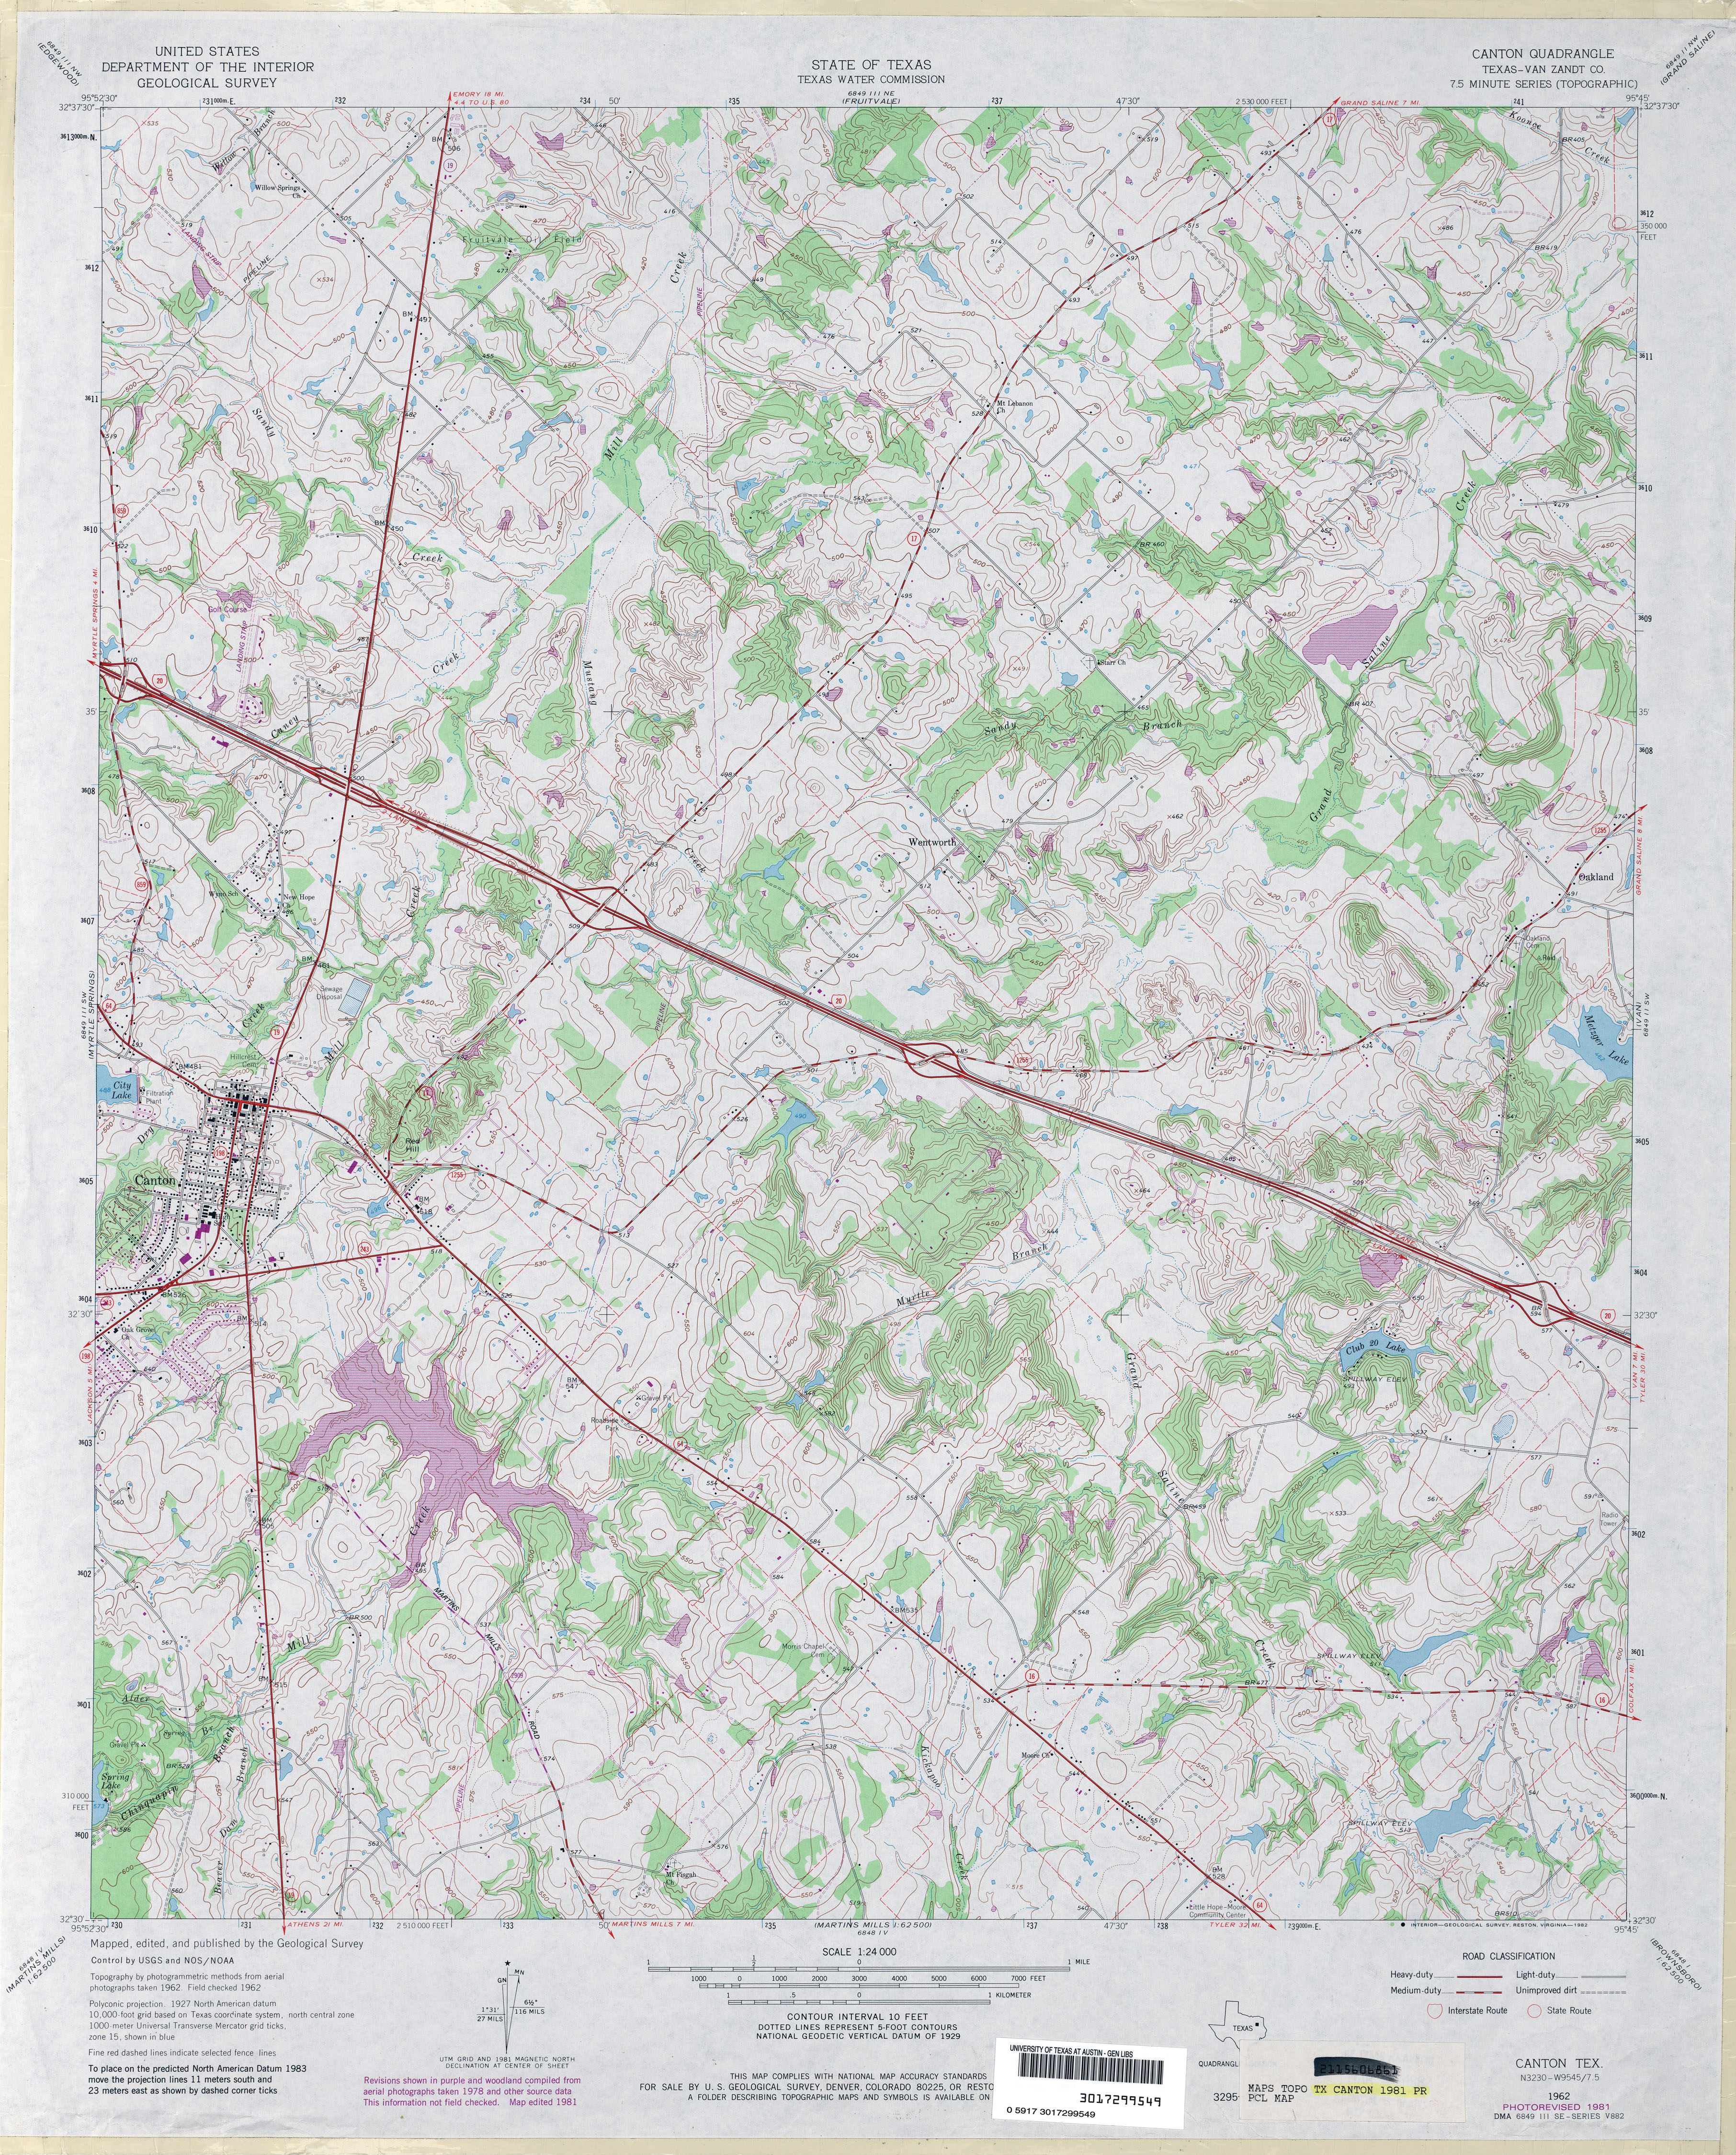 Texas Topographic Maps - Perry-Castañeda Map Collection - UT ... on stillwater tx map, leland tx map, kosciusko tx map, mcalester tx map, cranfills gap tx map, new berlin tx map, avondale tx map, seattle tx map, boston tx map, natchitoches tx map, biloxi tx map, brooklyn tx map, waverly tx map, rio rancho tx map, springfield tx map, nashville tx map, arnett tx map, mapquest tx map, goodland tx map, tyler tx map,